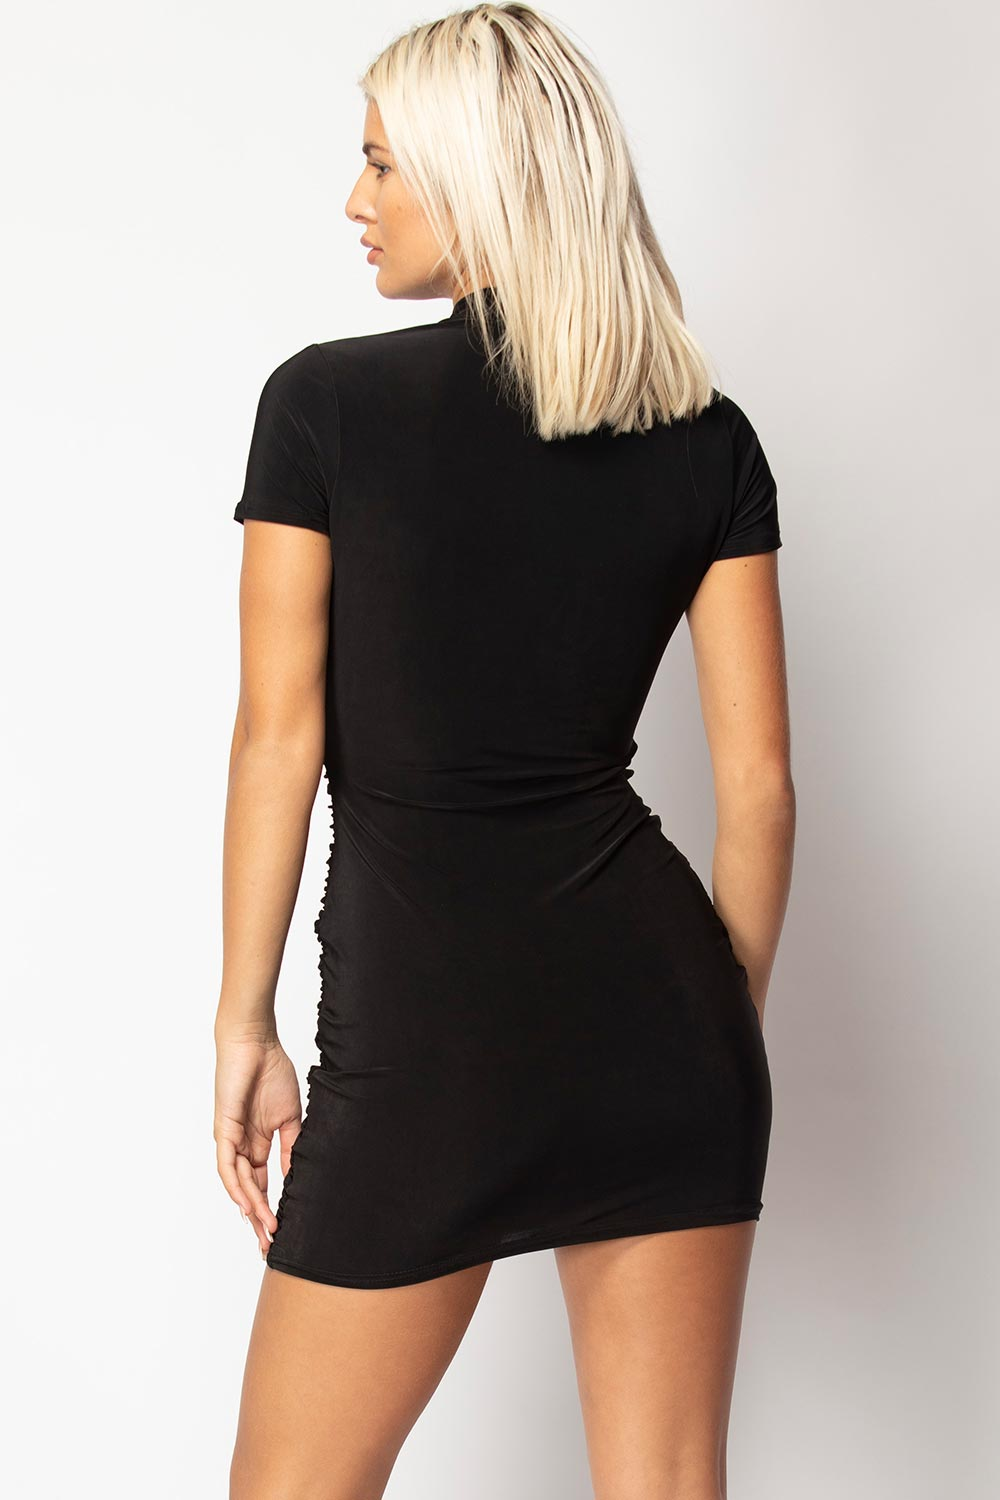 black bodycon dress uk